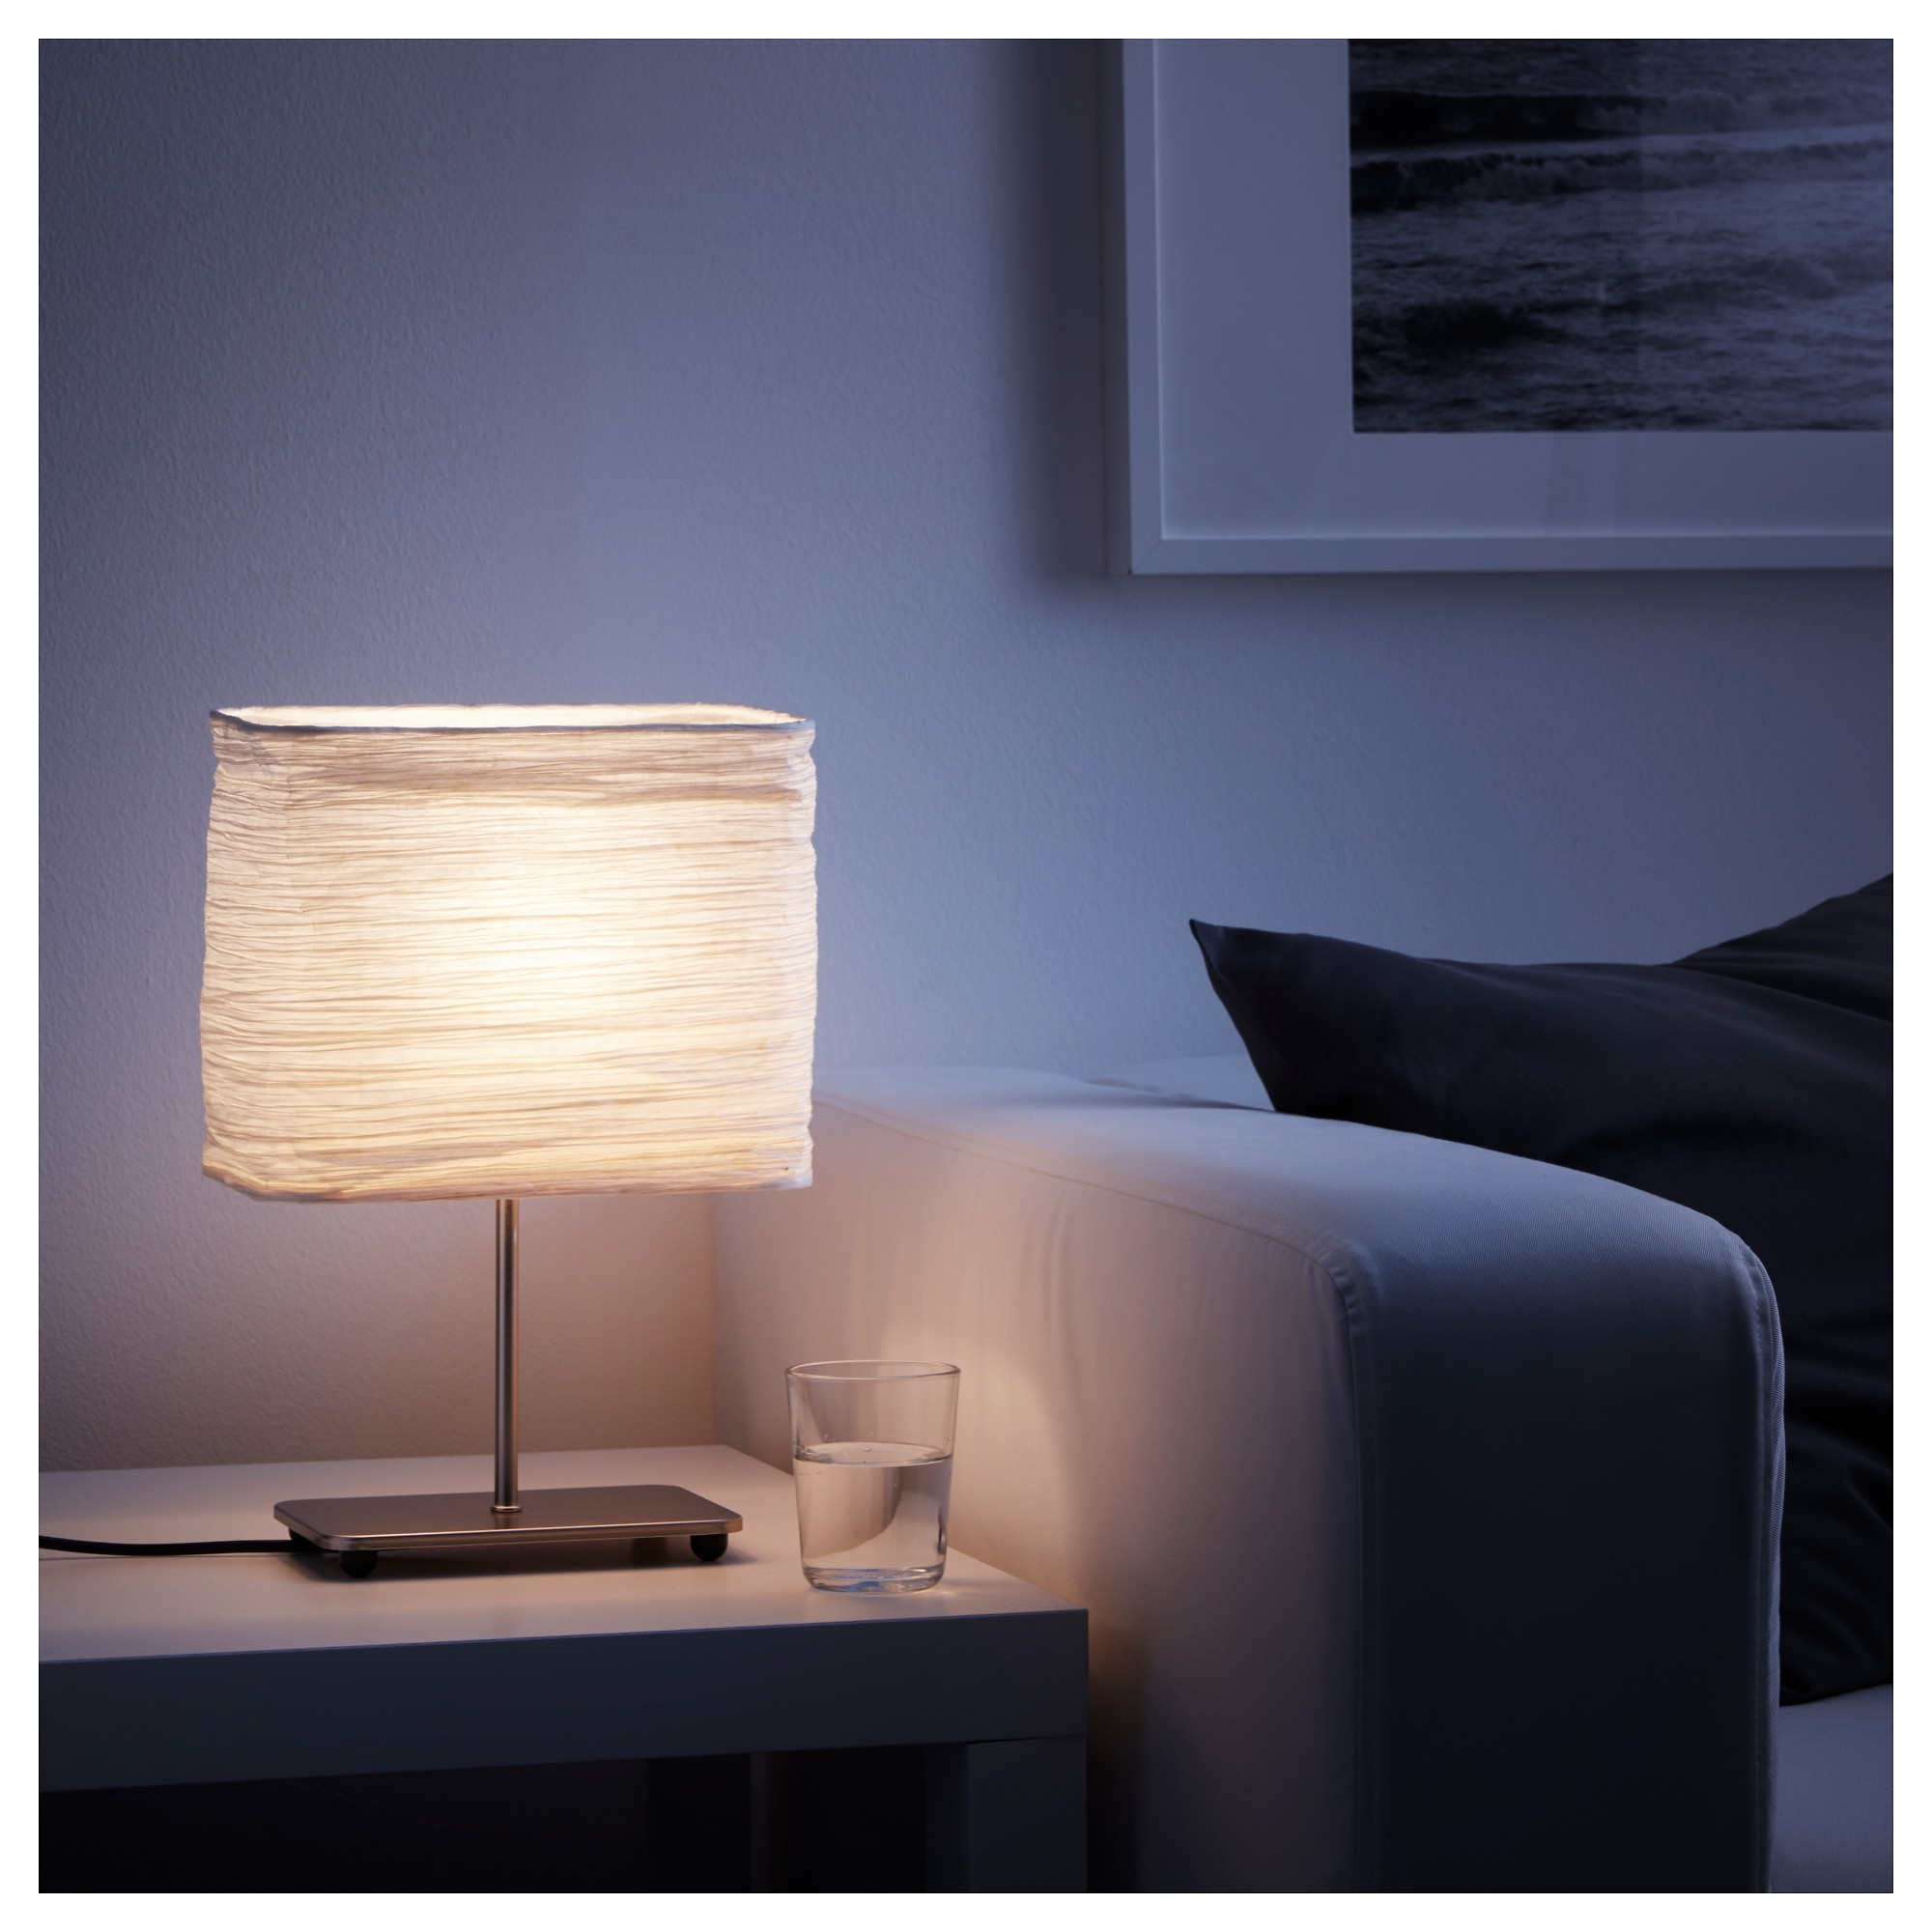 Current Nightstand: Magnarp Table Lamp Natural Nightstand Cm Ikea Art Silver Intended For Living Room Table Lamps At Ikea (View 2 of 20)